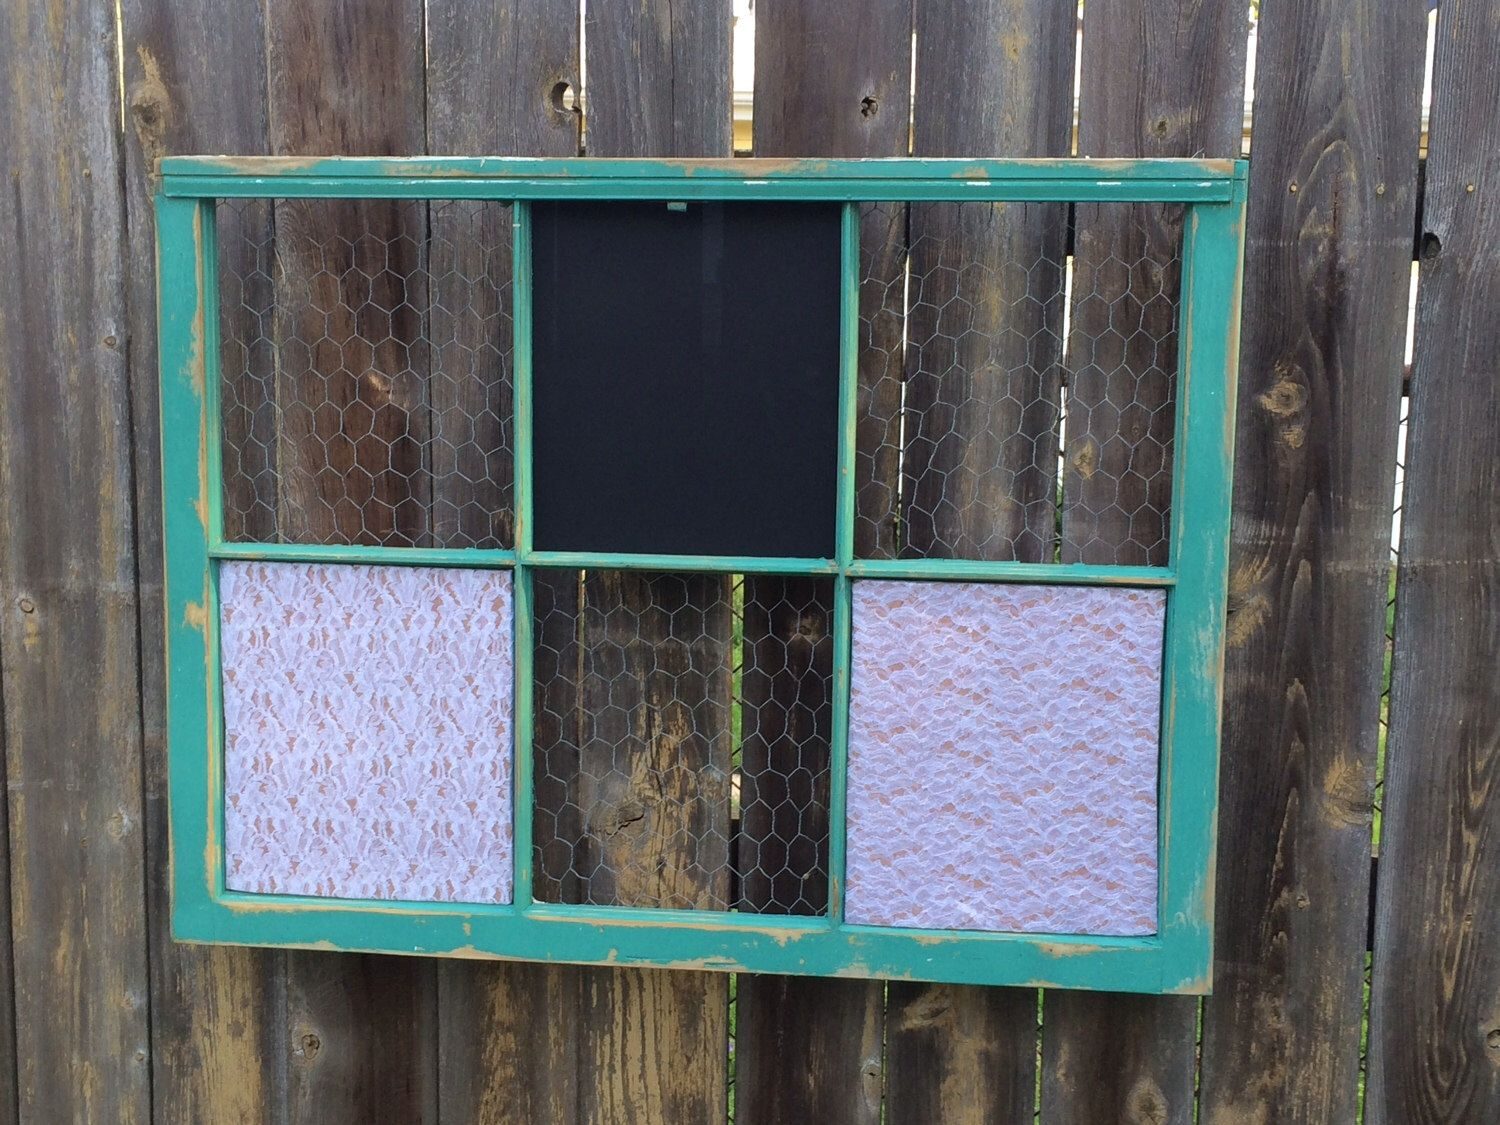 Reclaimed Old Window - Shabby Chic Teal Frame - Chalkboard - Lace ...